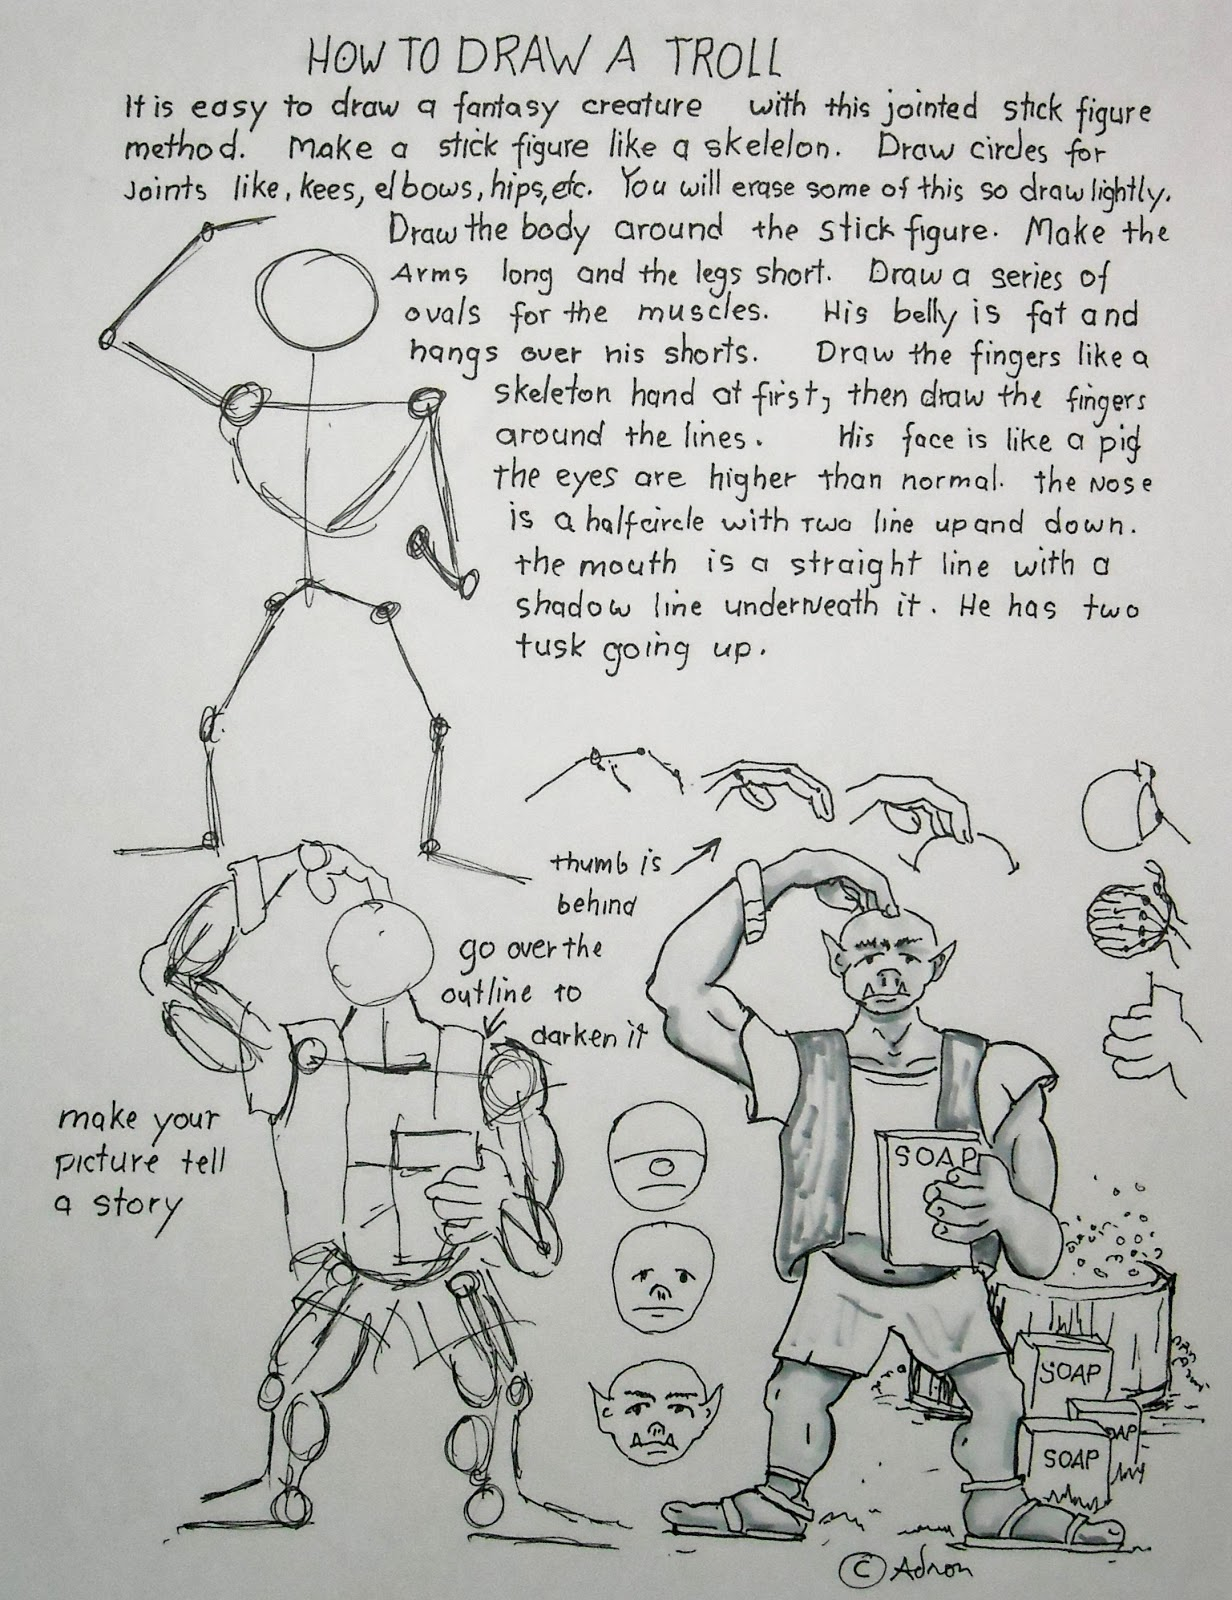 How To Draw Worksheets For The Young Artist How To Draw A Troll Worksheet And Lesson